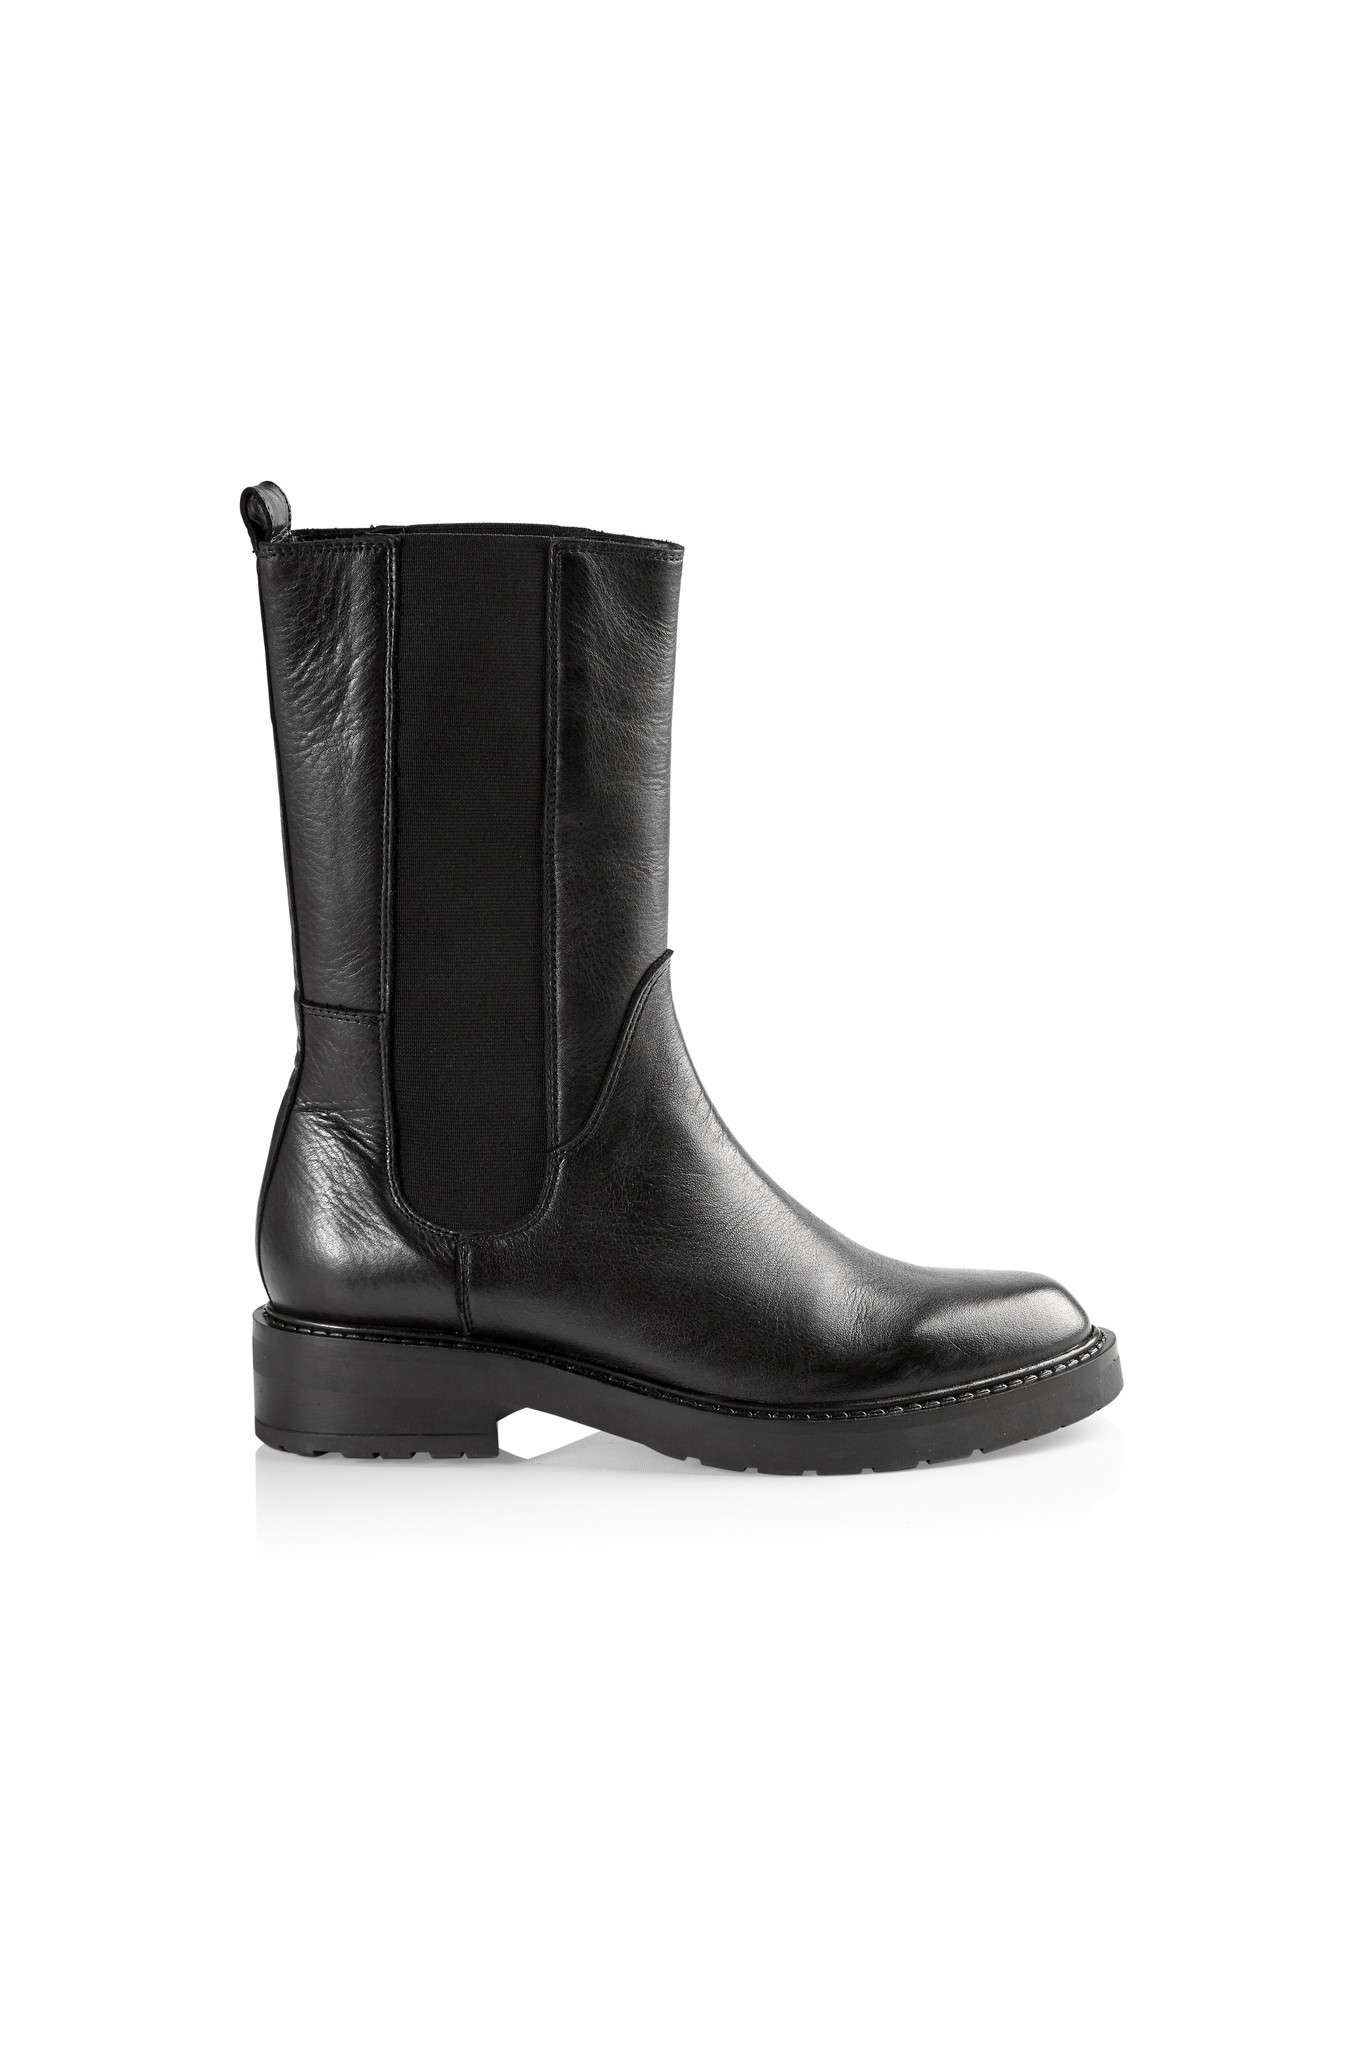 Ines Leather Boots - Black-1